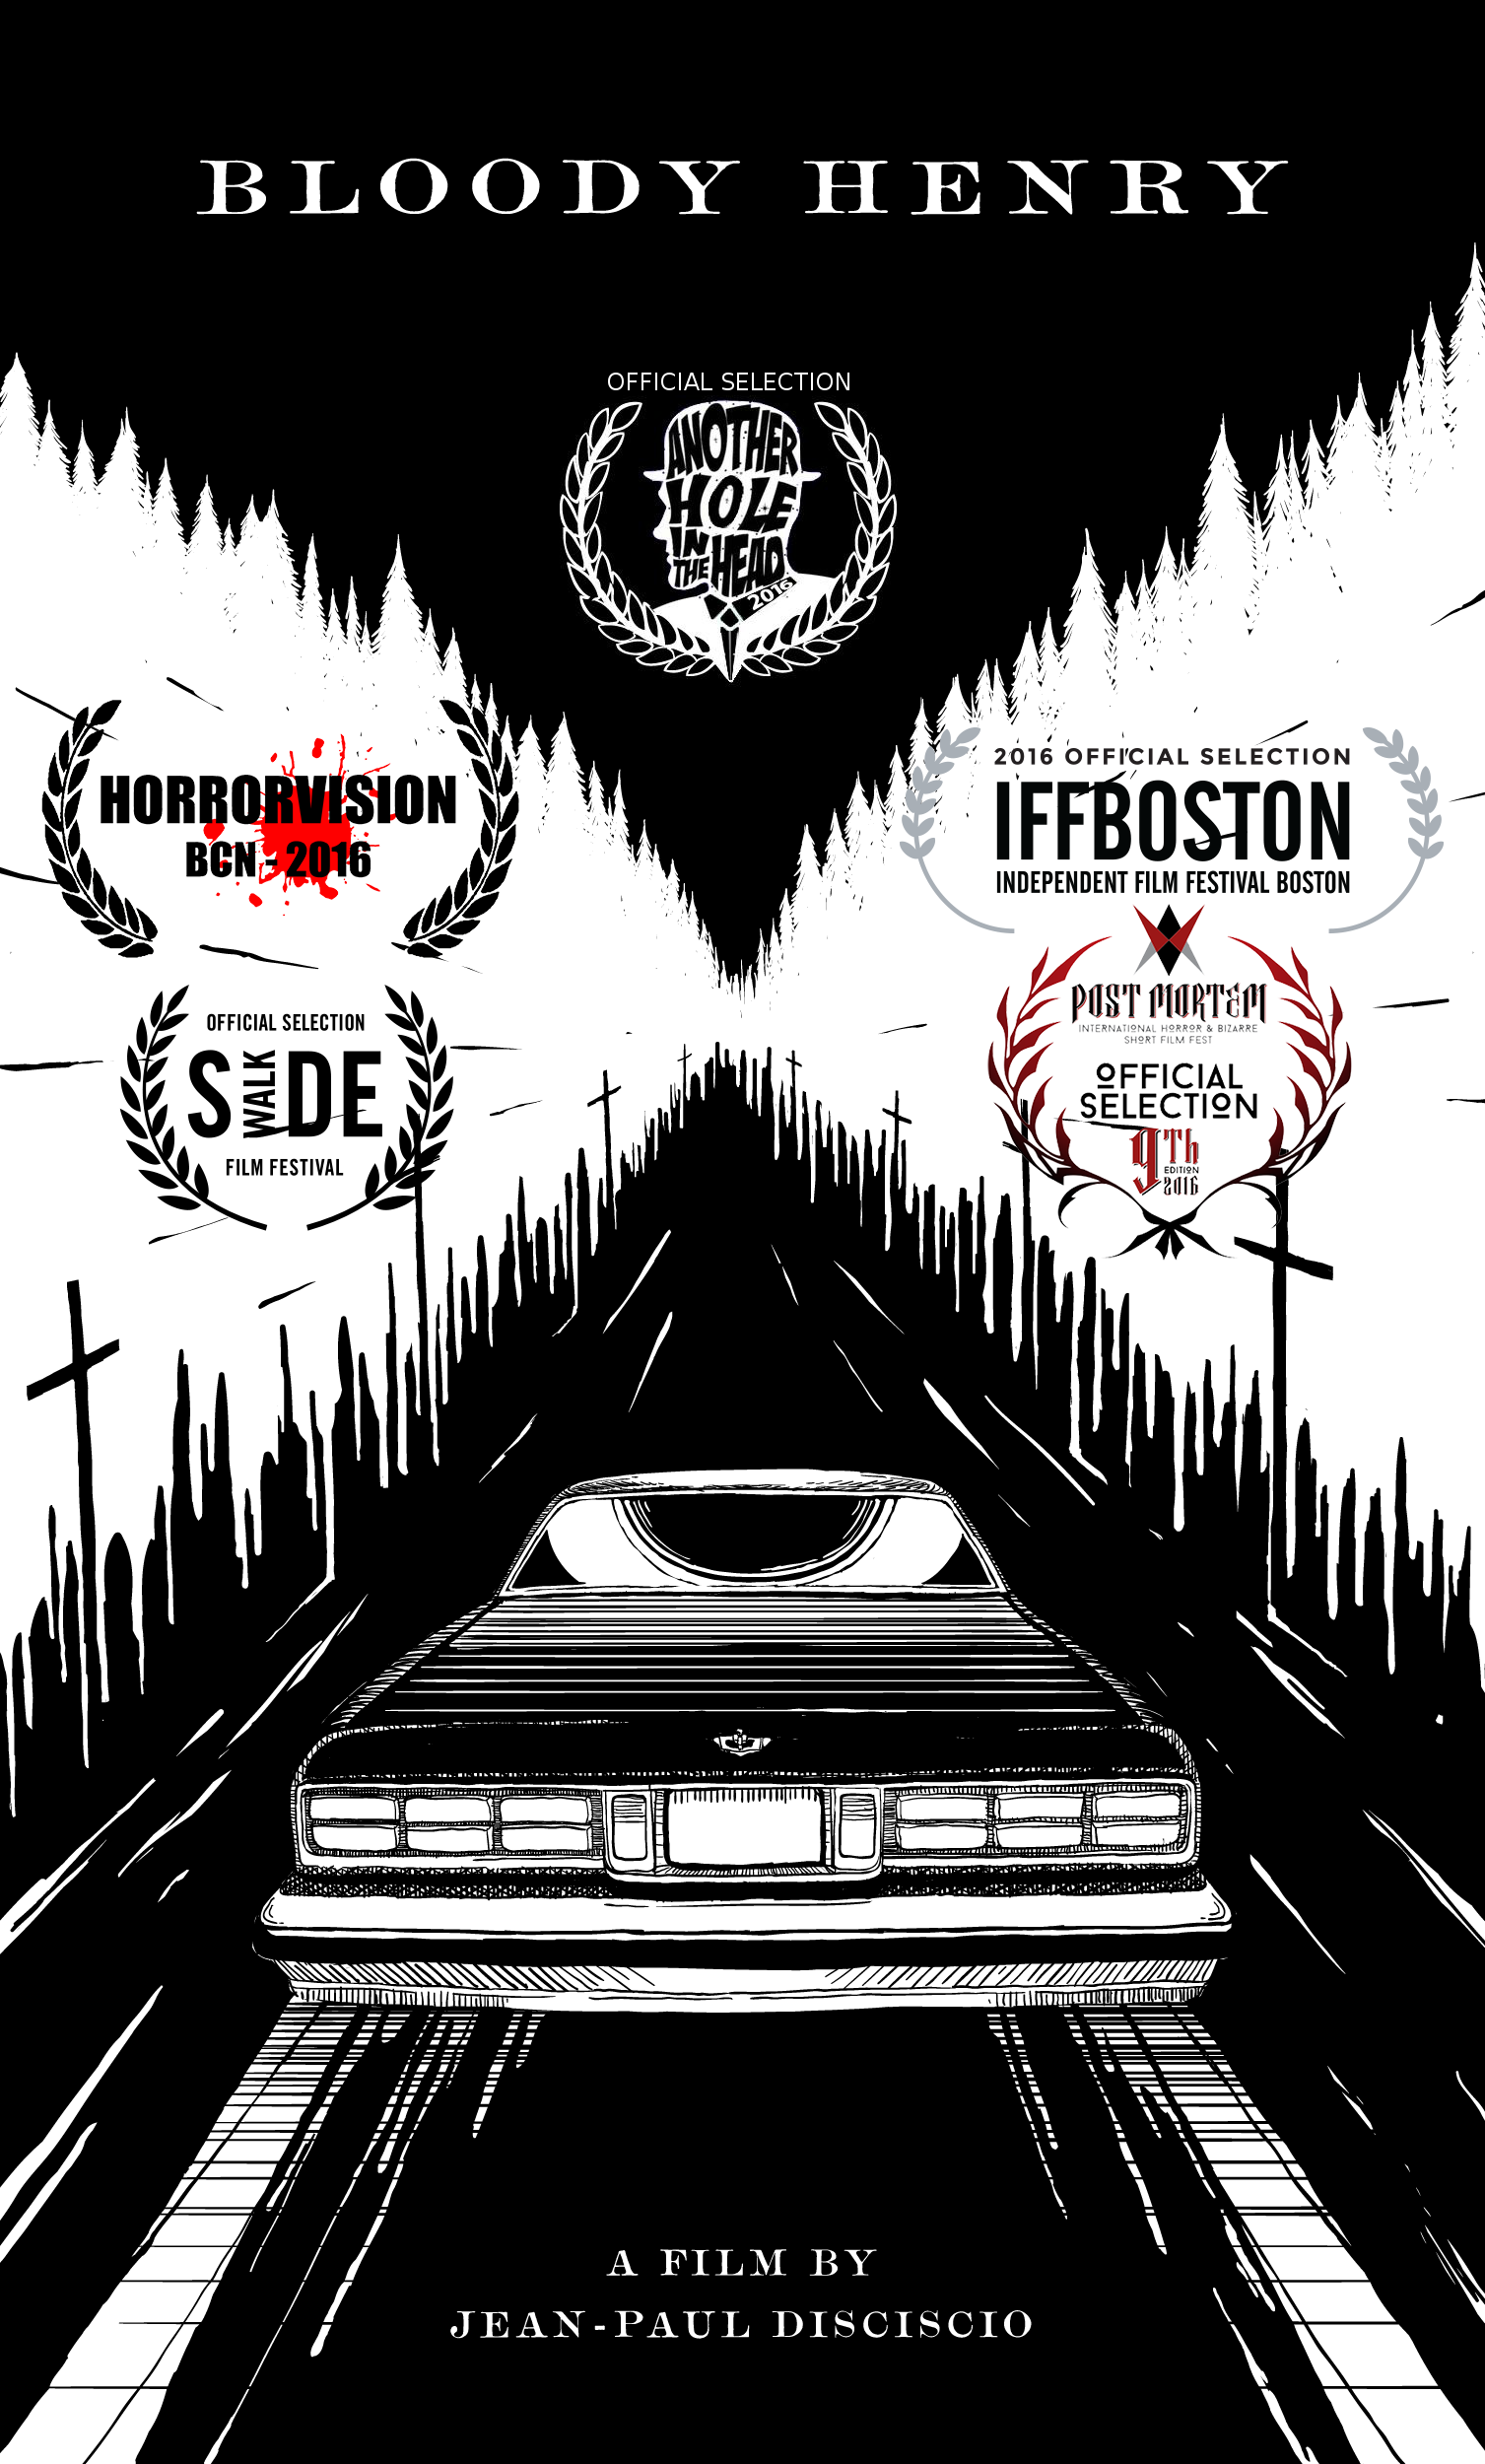 Currently touring drive-in movie theaters and film festivals internationally. Contact us for a private link to view the film.